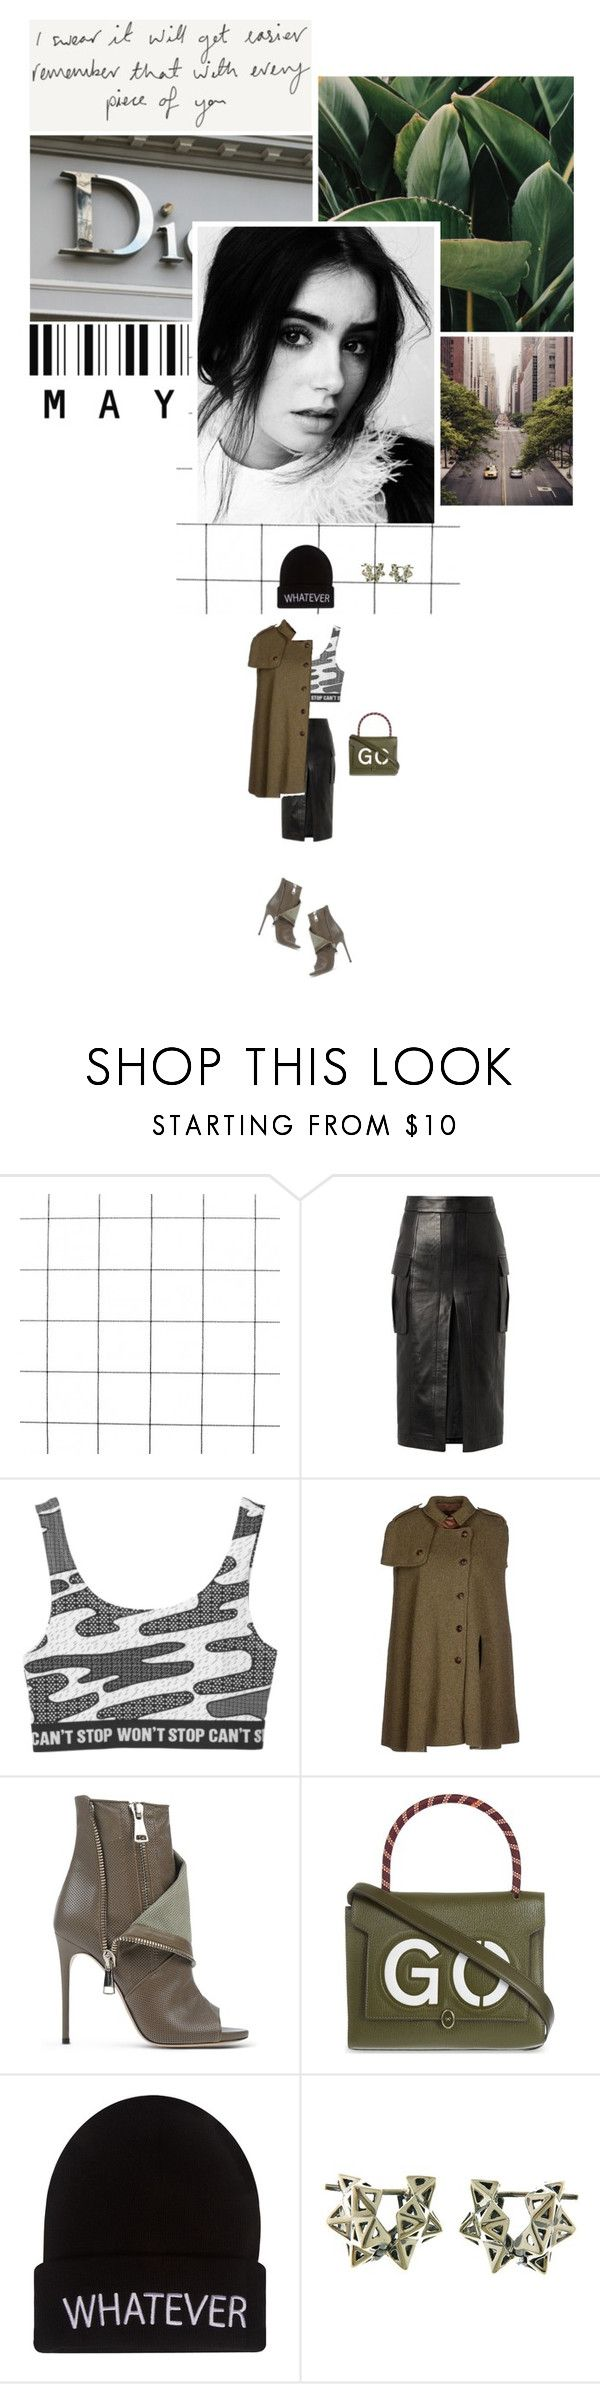 """""""I swear, it will get easier remember that with every piece of you..."""" by miky94 on Polyvore featuring moda, Dulce, Balmain, Monki, Ralph Lauren, Casadei, Anya Hindmarch, Wet Seal e John Brevard"""